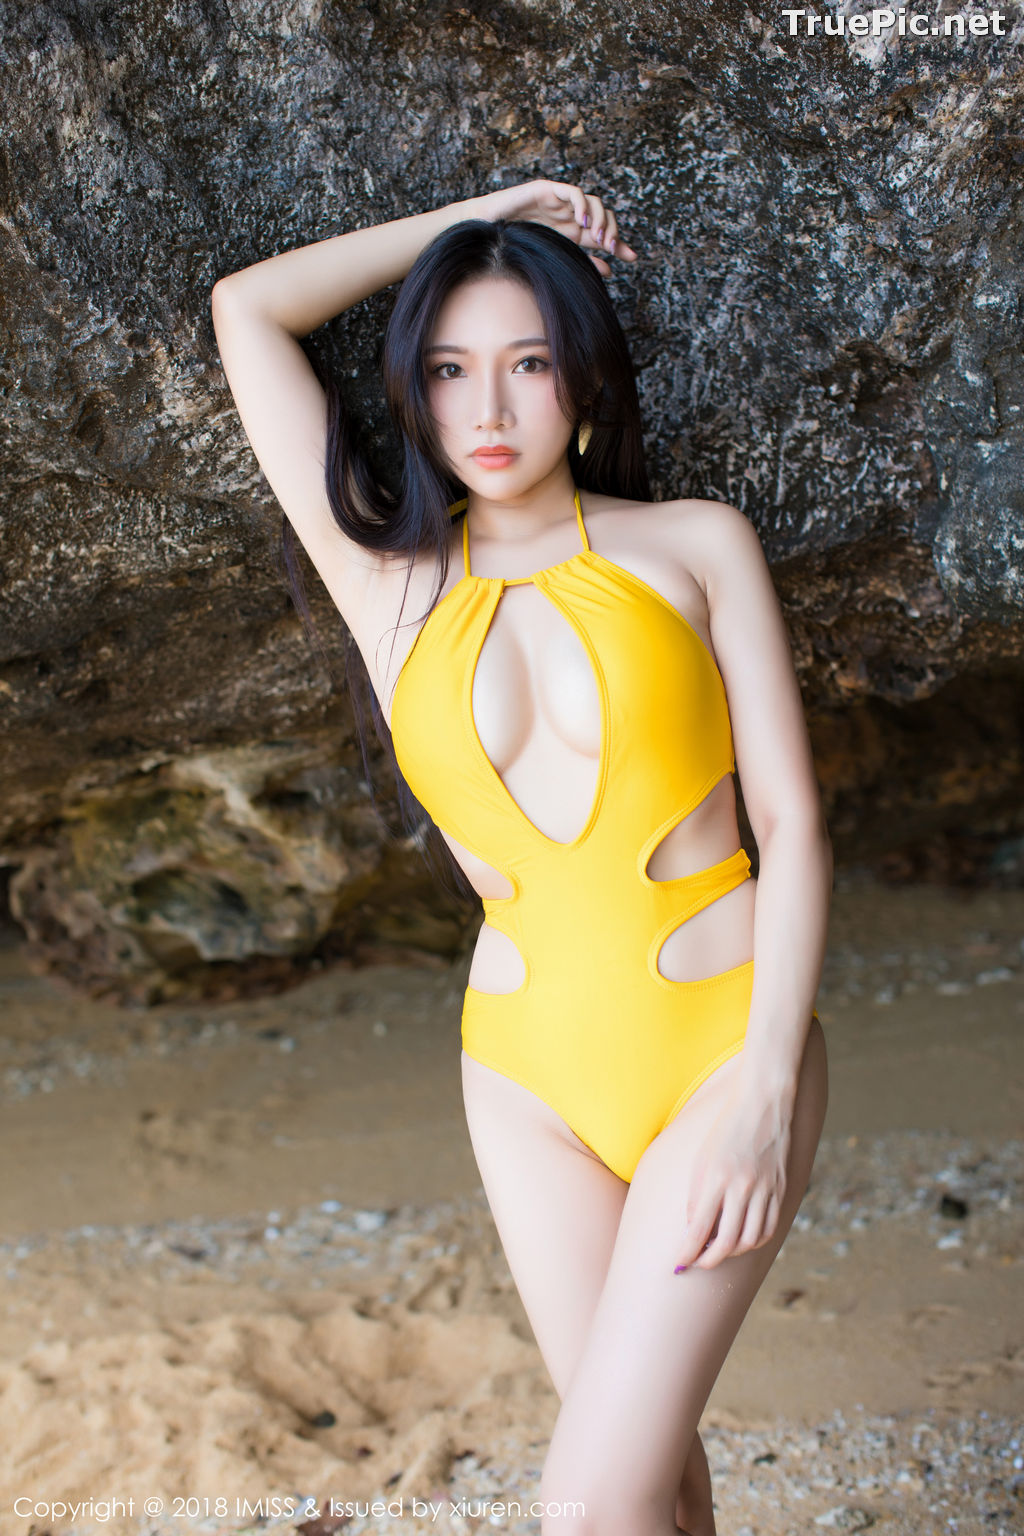 Image IMISS Vol.227 - Chinese Model Xiao Hu Li (小狐狸Sica) - Bikini On the Beach - TruePic.net - Picture-1